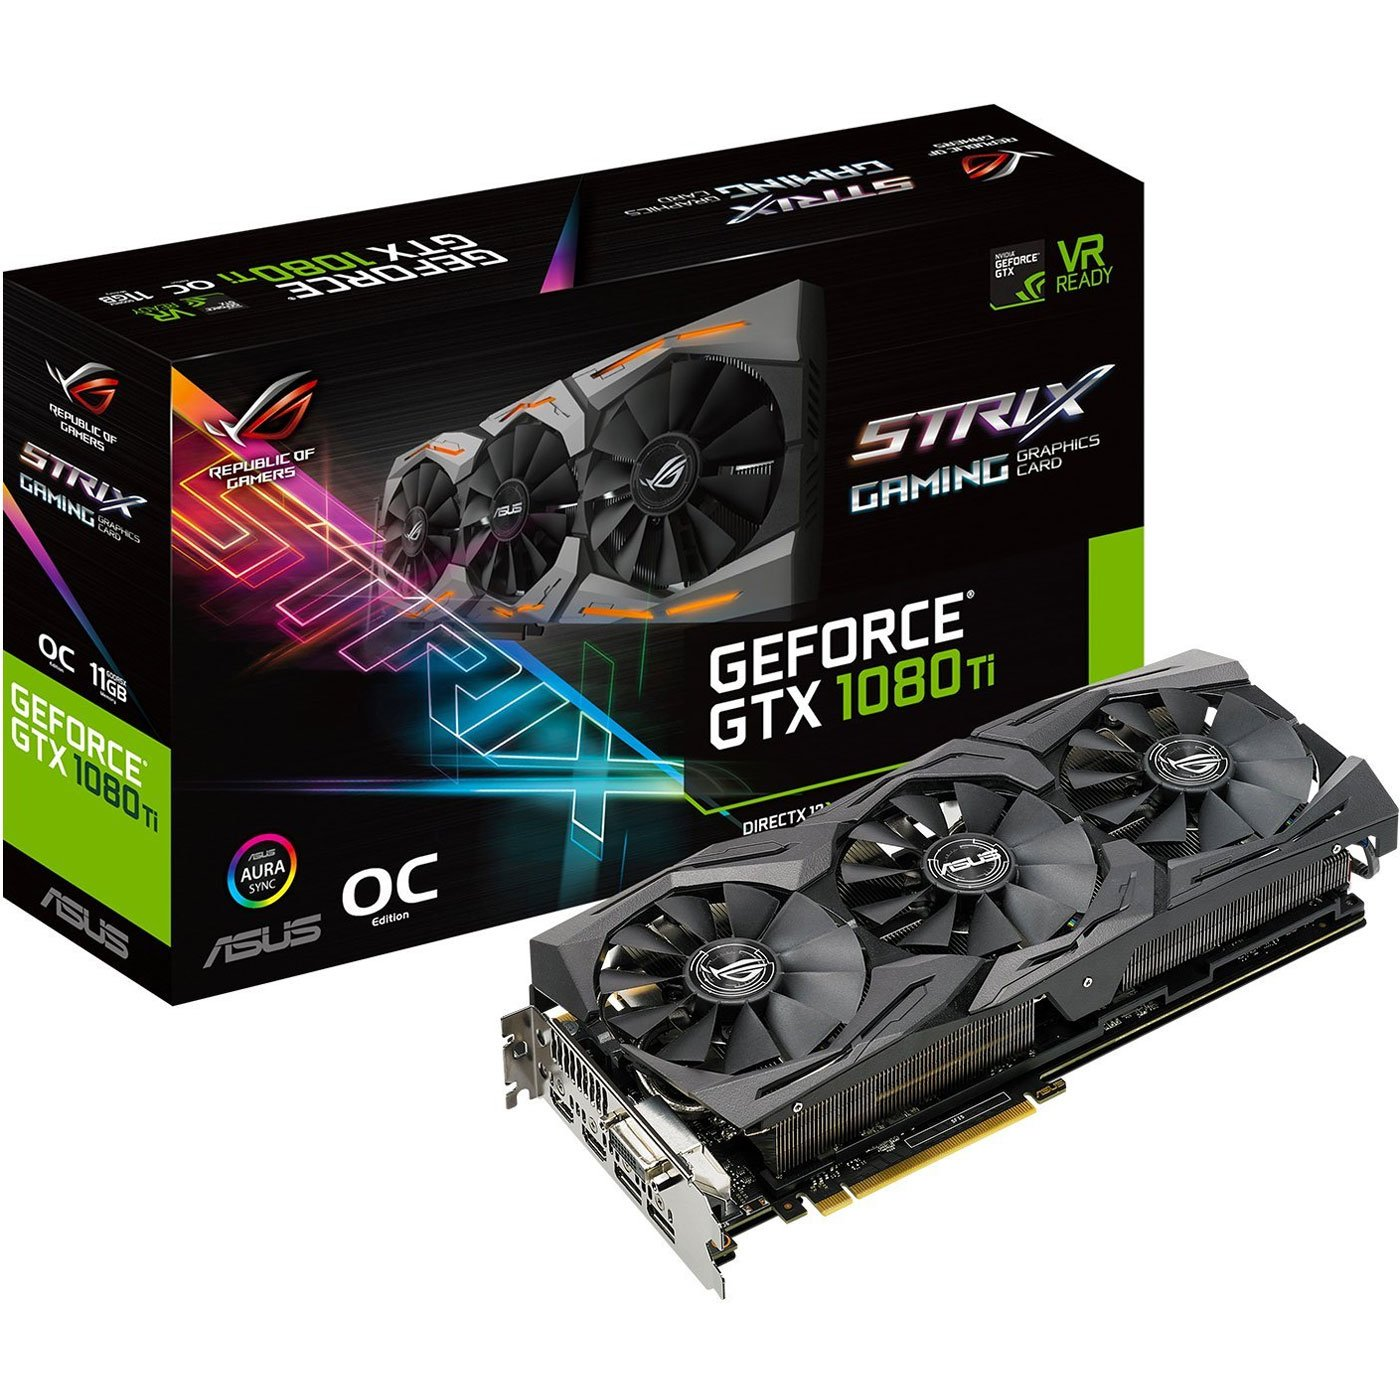 ASUS ROG-STRIX-GTX1080TI-O11G-GAMING GeForce 11GB OC Edition VR Ready 5K HD Gaming HDMI DisplayPort DVI Overclocked PC GDDR5X Graphics Card by Asus